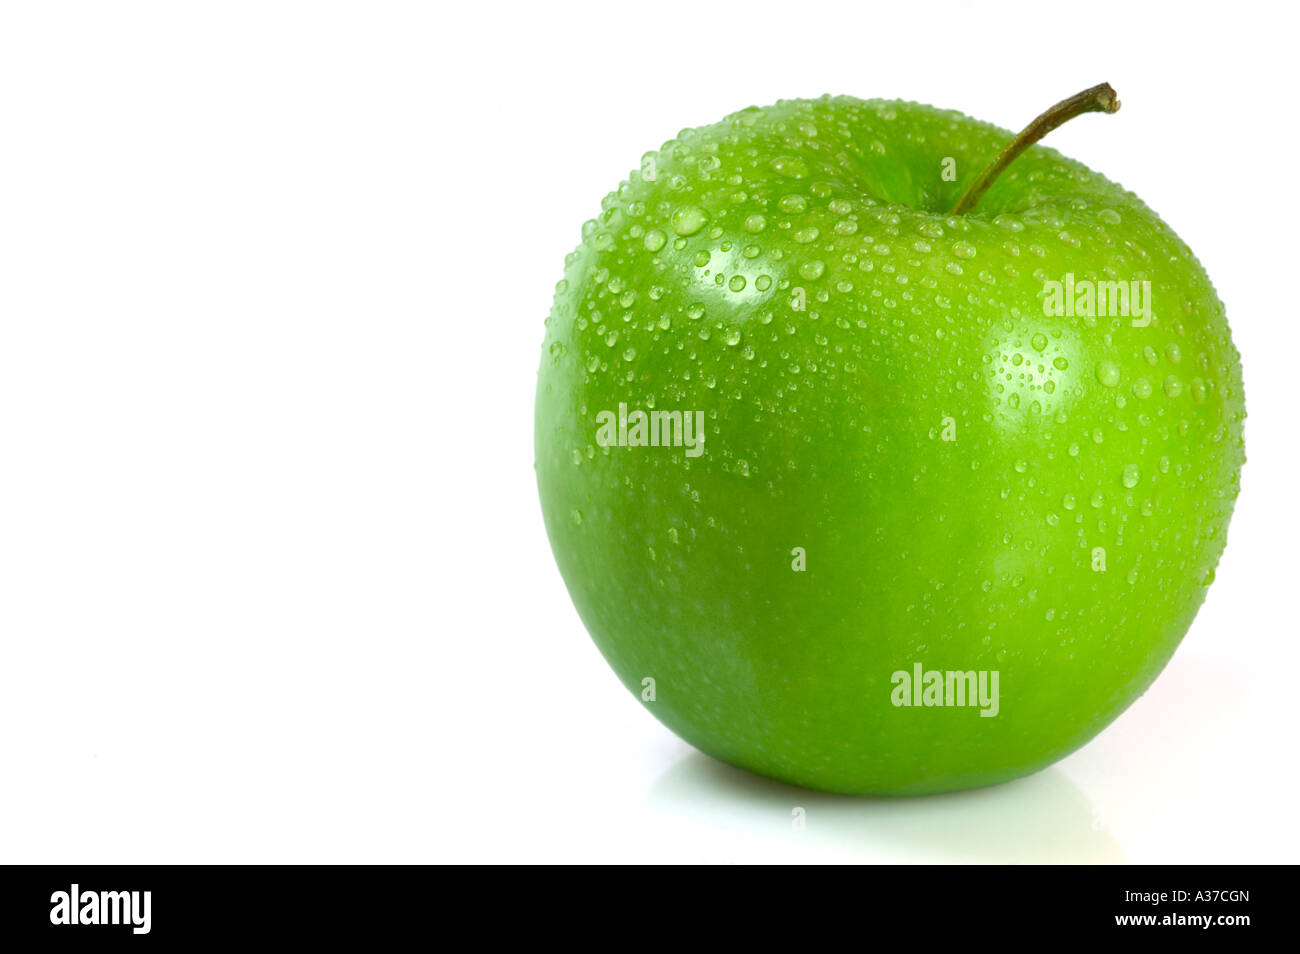 Green apple covered in water droplets isolated against a white background. Slight shadow detail for realism. Stock Photo